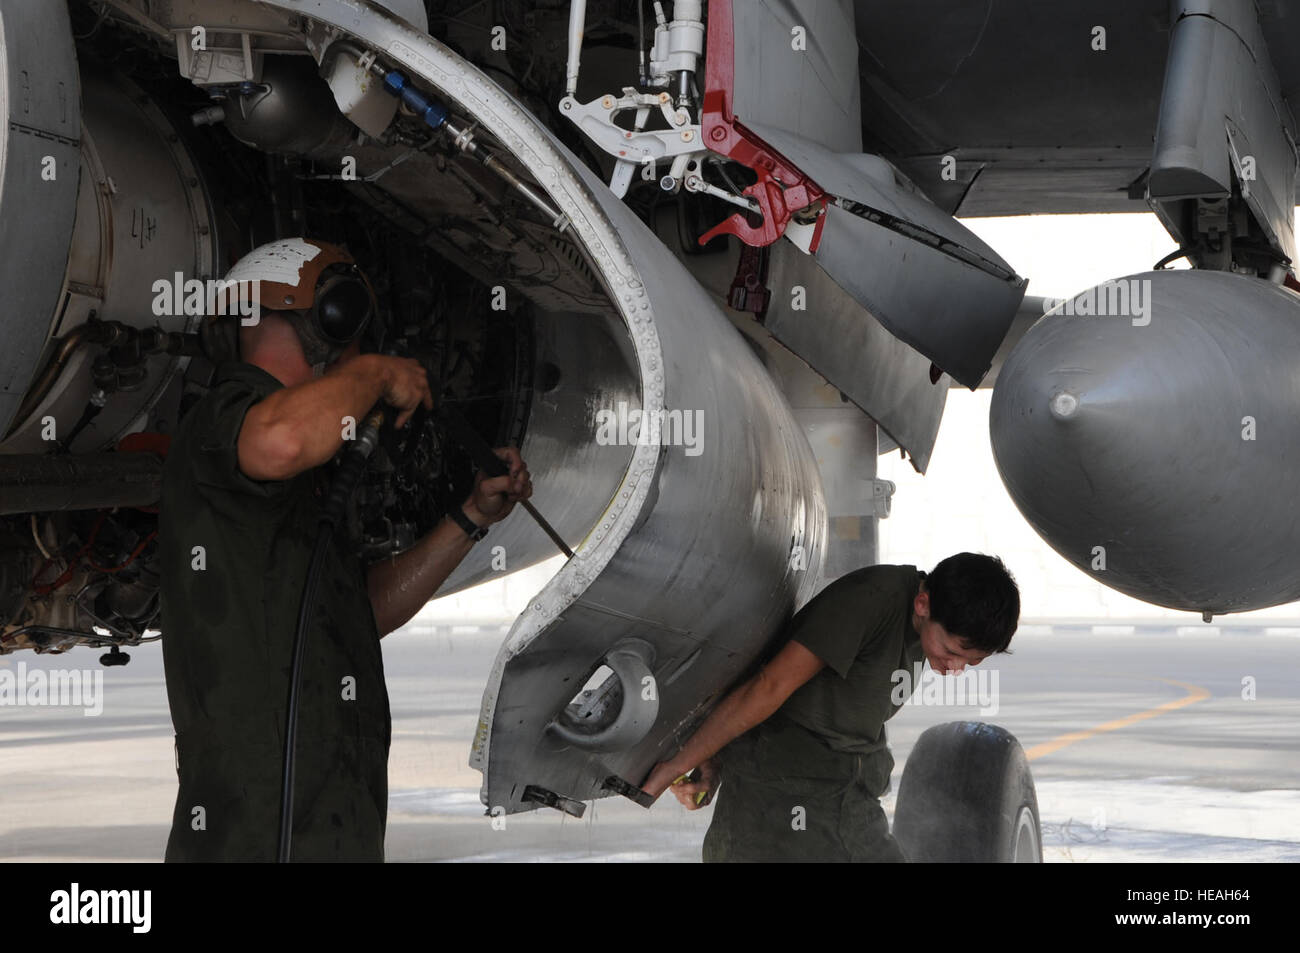 Cpl. Kristine Anderson (right) holds the engine bay door open on an EA-6B Prowler while Cpl. Shelby Coville uses a high-pressure water spray during a 14-day aircraft wash in Southwest Asia, September 25, 2012. The 14-day aircraft wash removes dirt and build-up residue that can damage the aircraft. Anderson is assigned to the Marine Tactical Electronic Warfare Squadron Two and Coville is assigned to the Marine Tactical Electronic Warfare Squadron Three. Both are deployed from the Marine Corps Air Station Cherry Point, N.C. Staff Sgt. Sheila deVera) Stock Photo